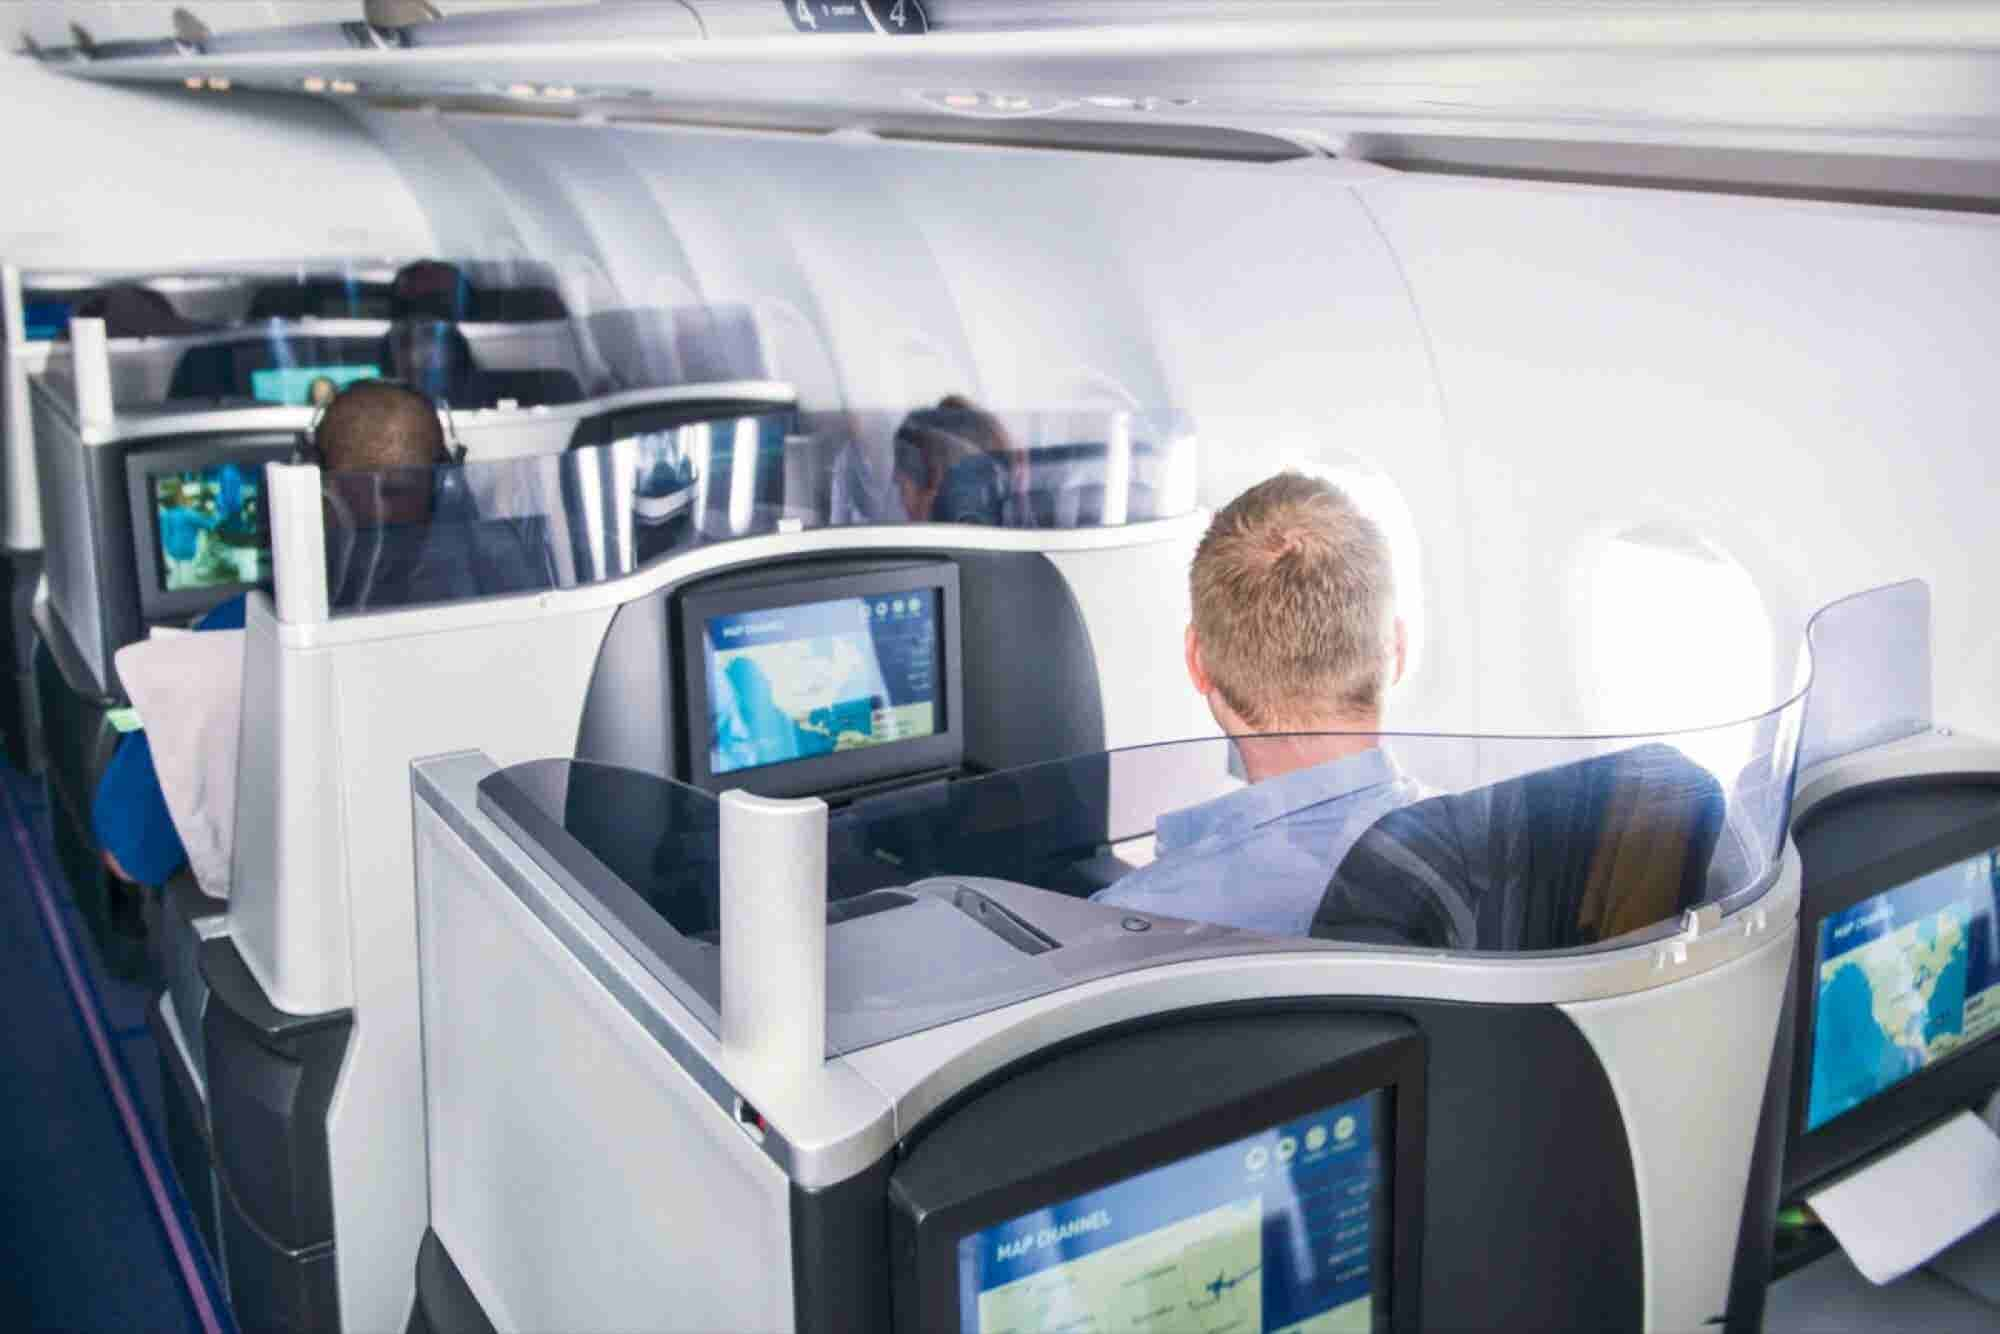 Business Travel Awards 2016: Best In-Flight Entertainment